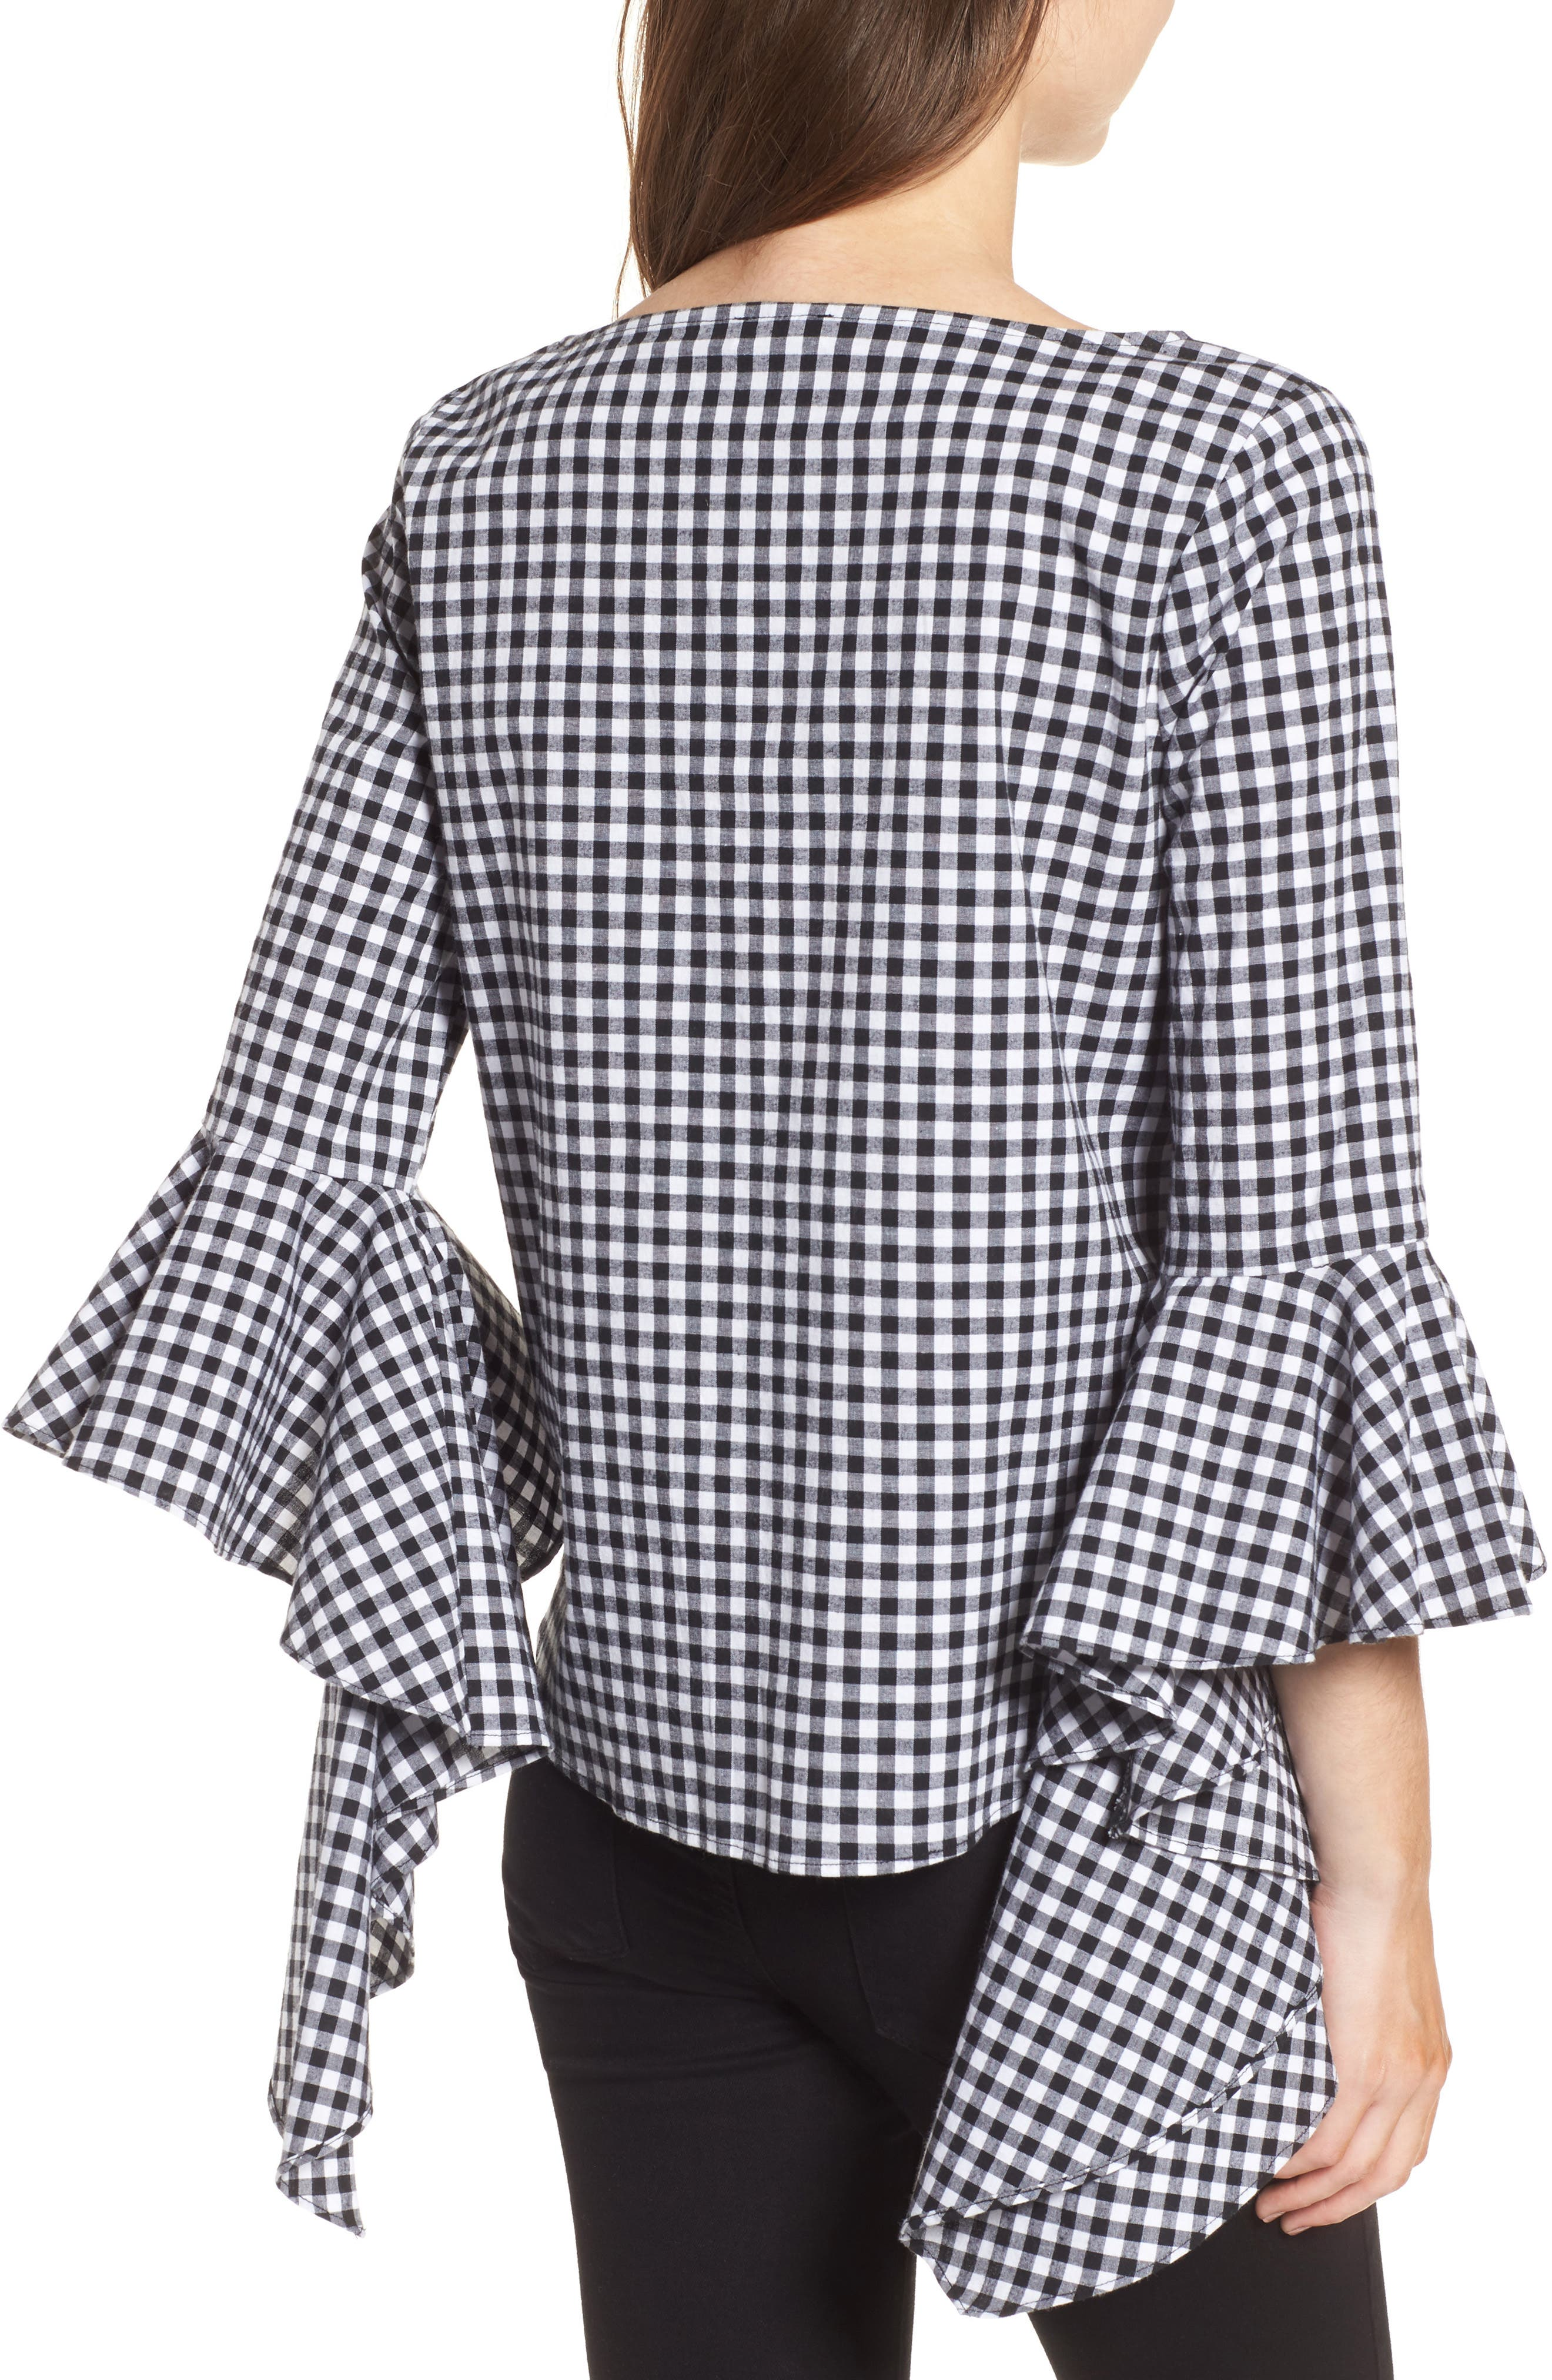 Gingham Ruffle Sleeve Top,                             Alternate thumbnail 2, color,                             Black- White Gingham